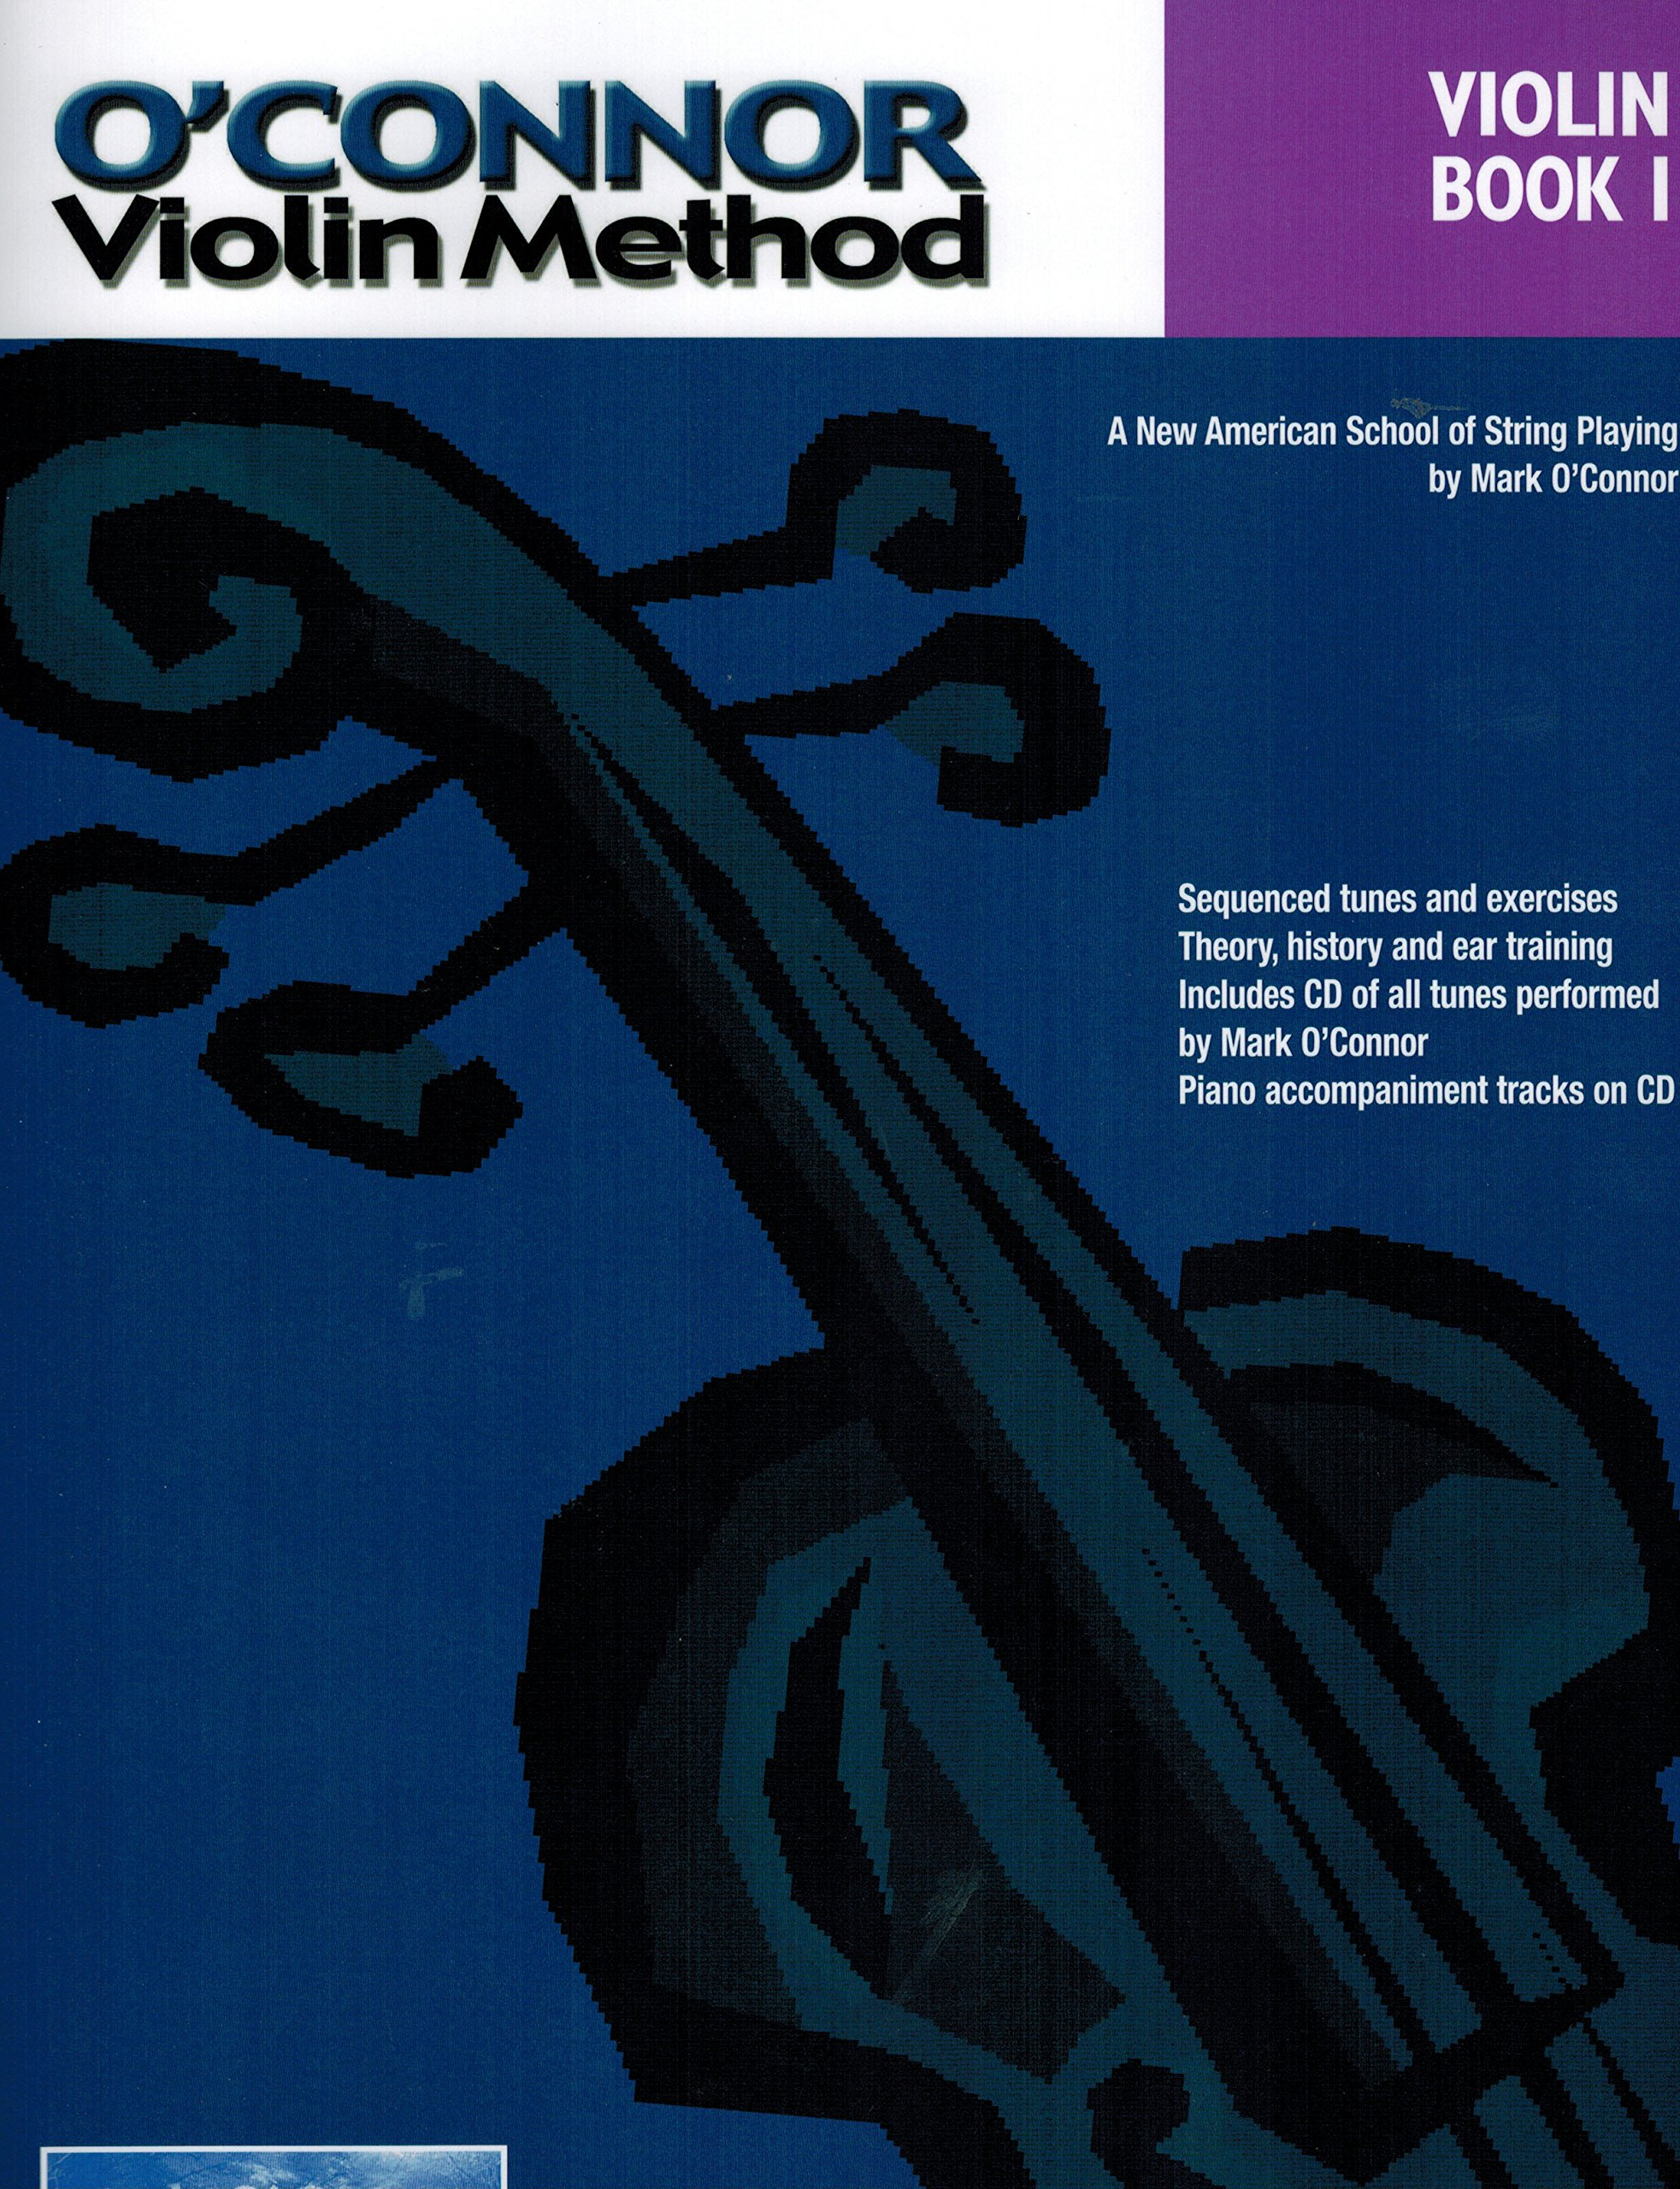 O'Connor Violin Method Book I and CD pdf